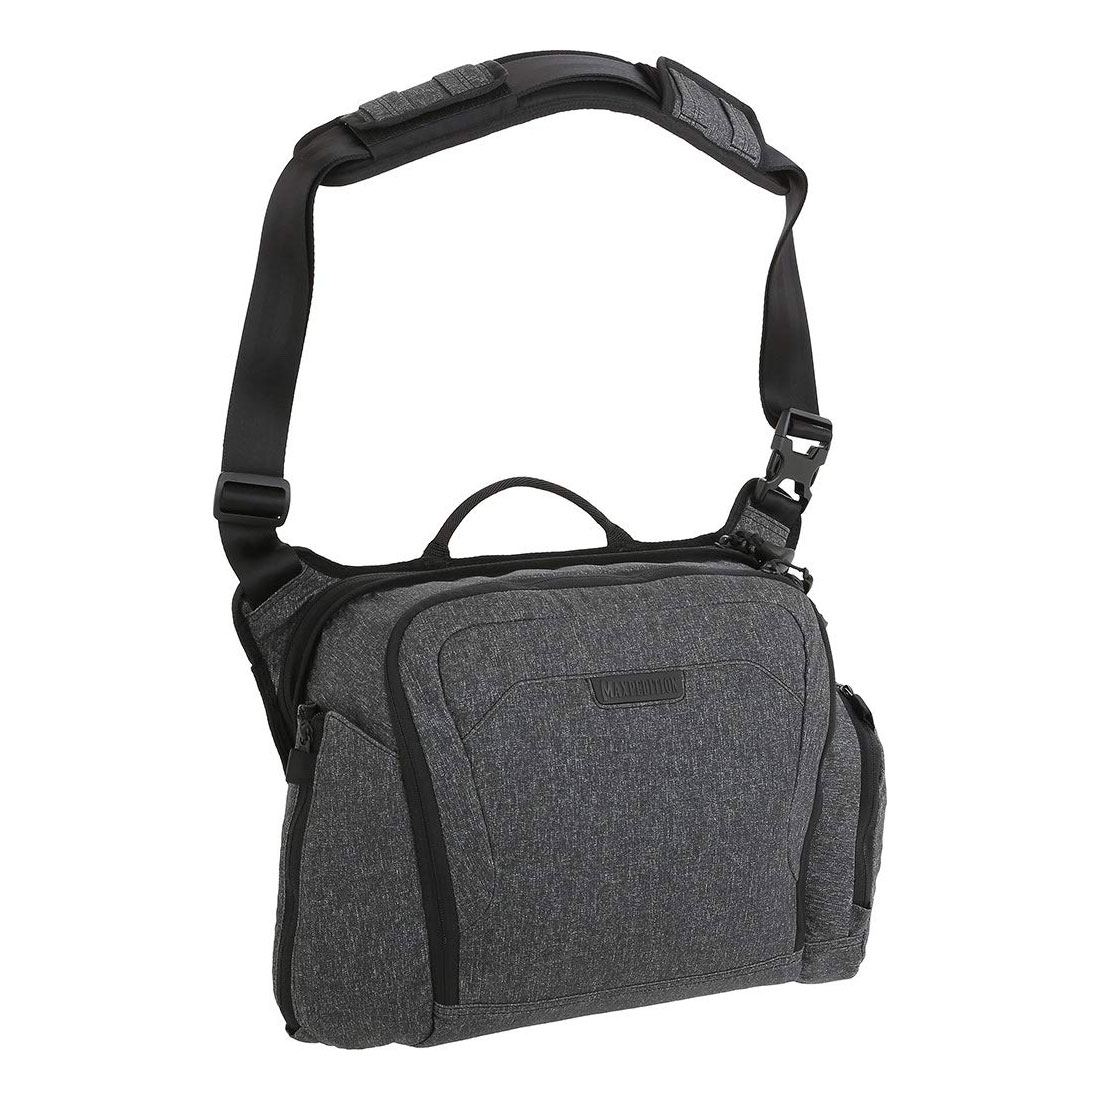 Maxpedition Entity Crossbody Bag